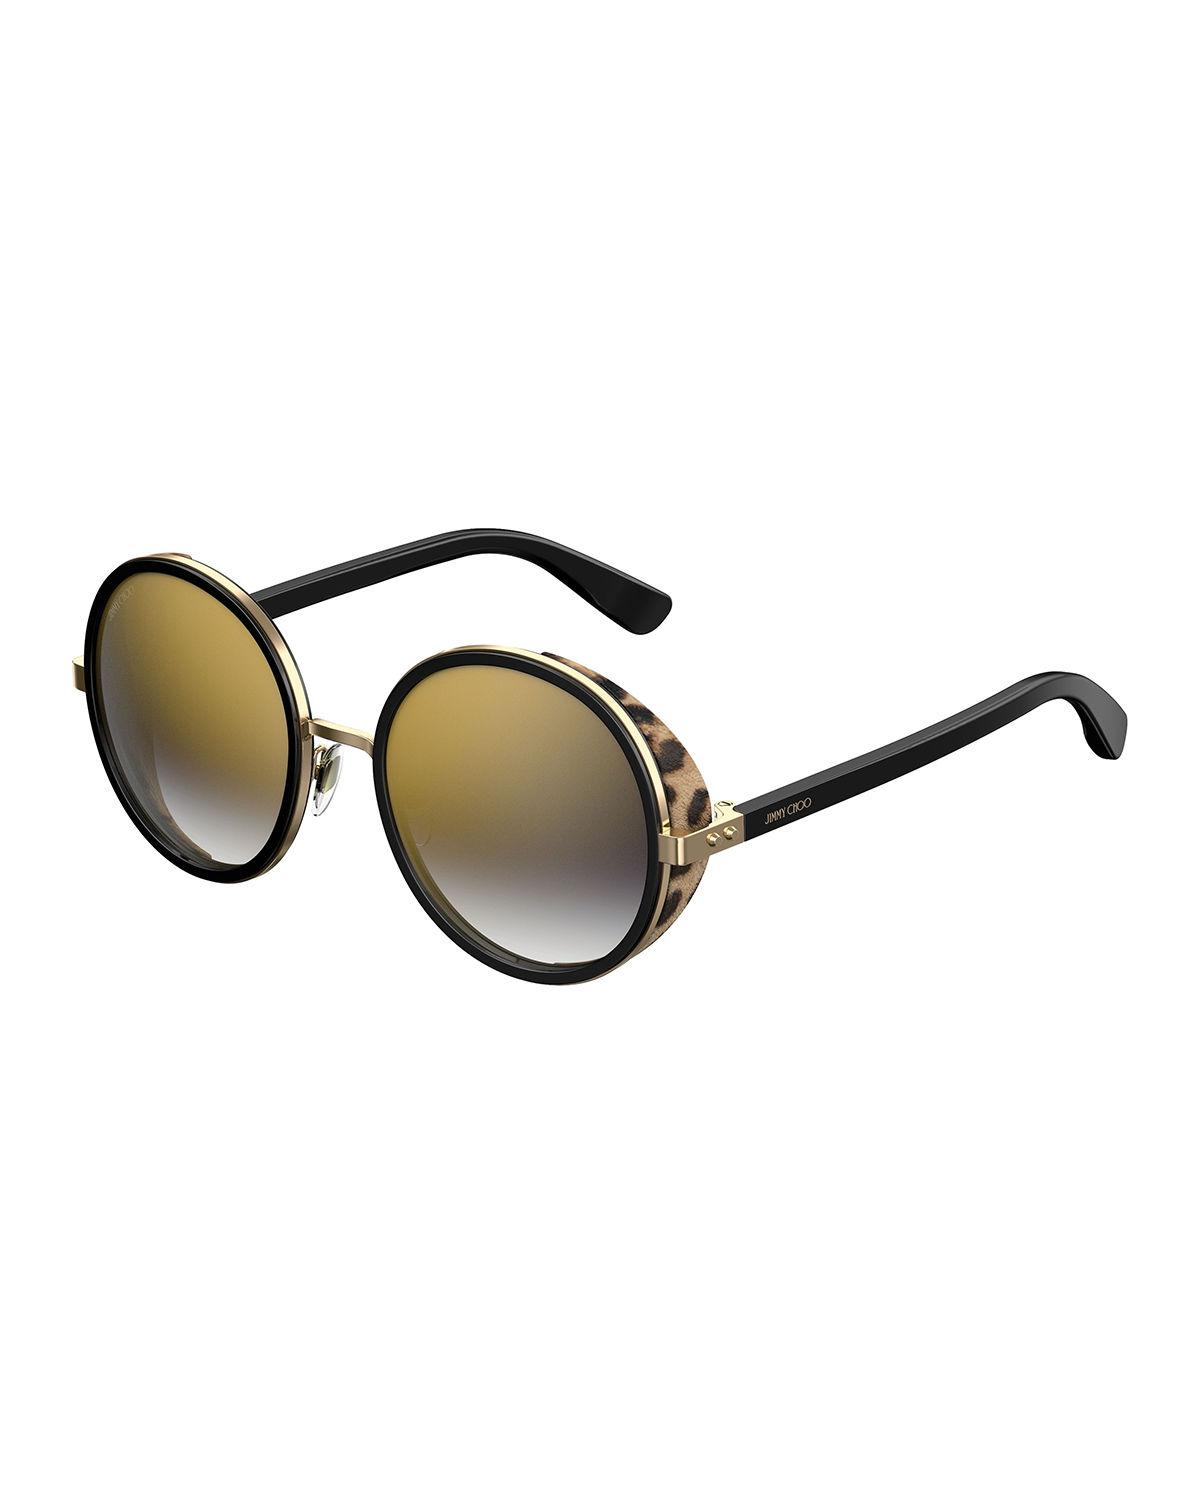 94ce421c4c56 Jimmy Choo - Black Andien Textured Round Sunglasses - Lyst. View fullscreen